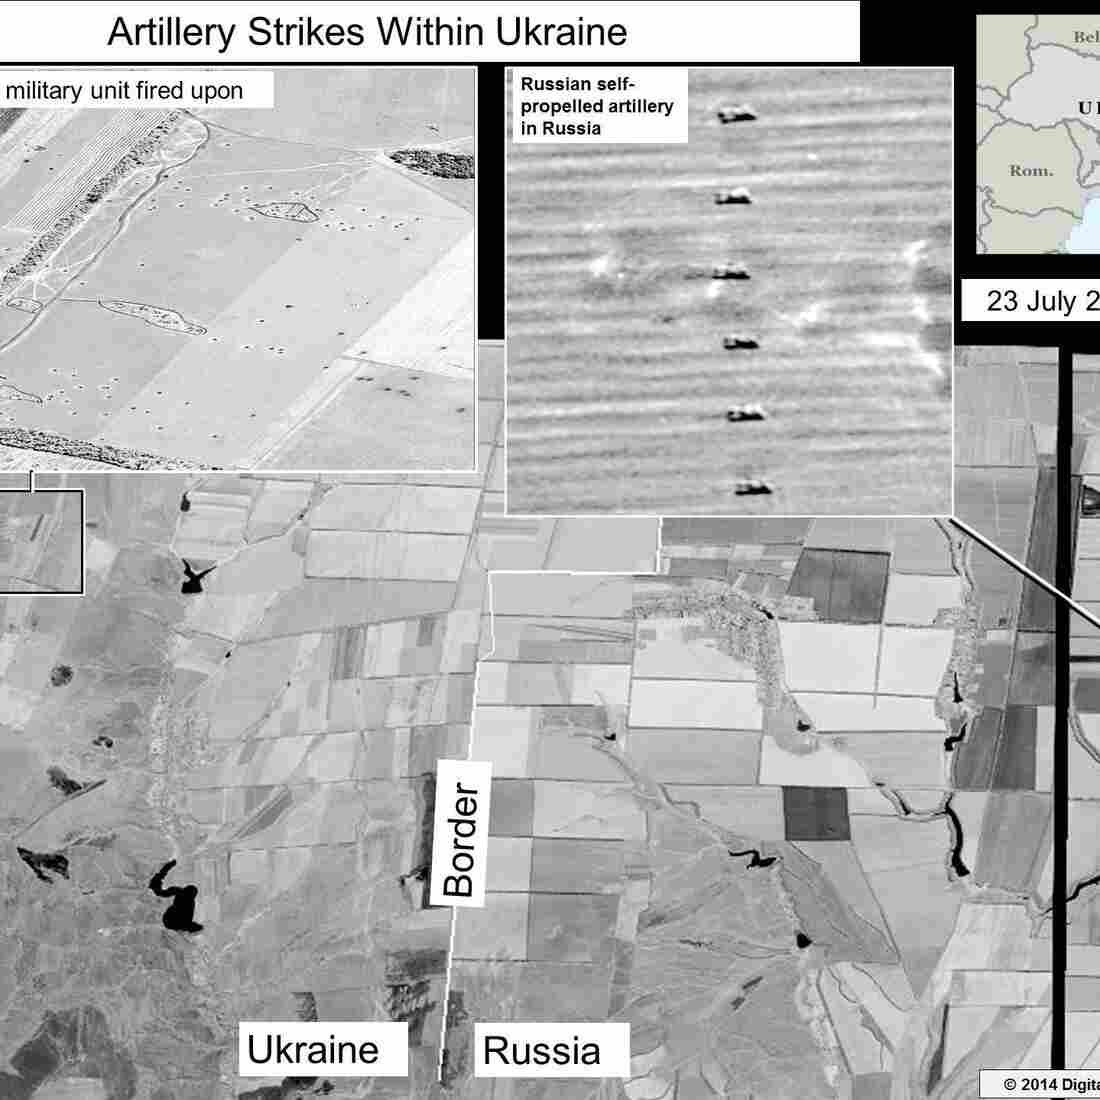 An image released by the U.S. State Department shows what it says is evidence of Russia firing artillery into eastern Ukraine.